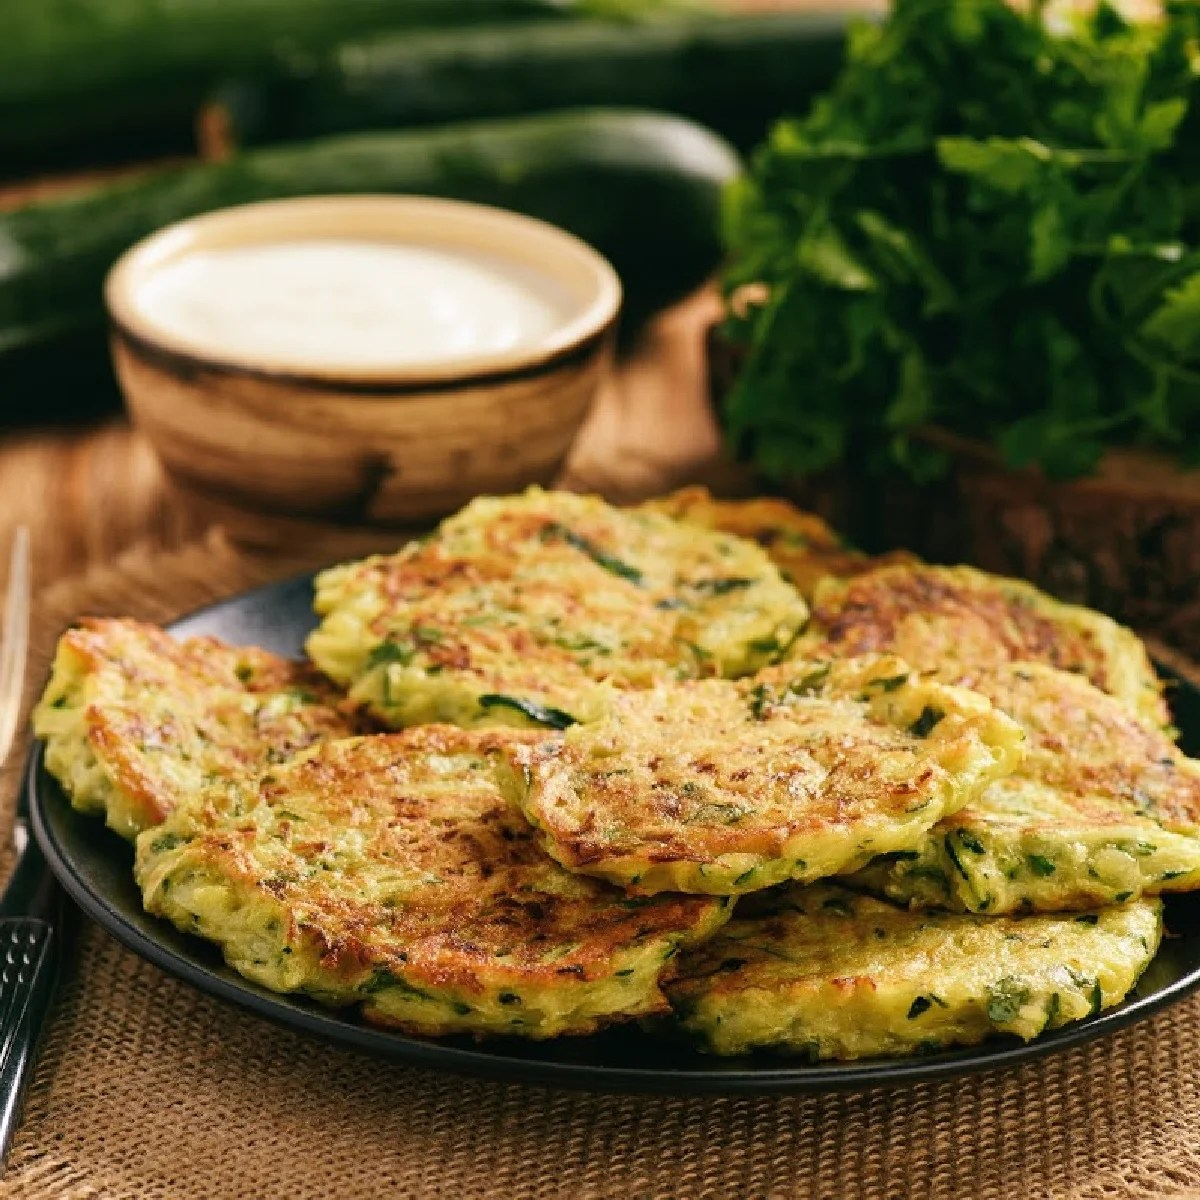 plate of broccoli patties